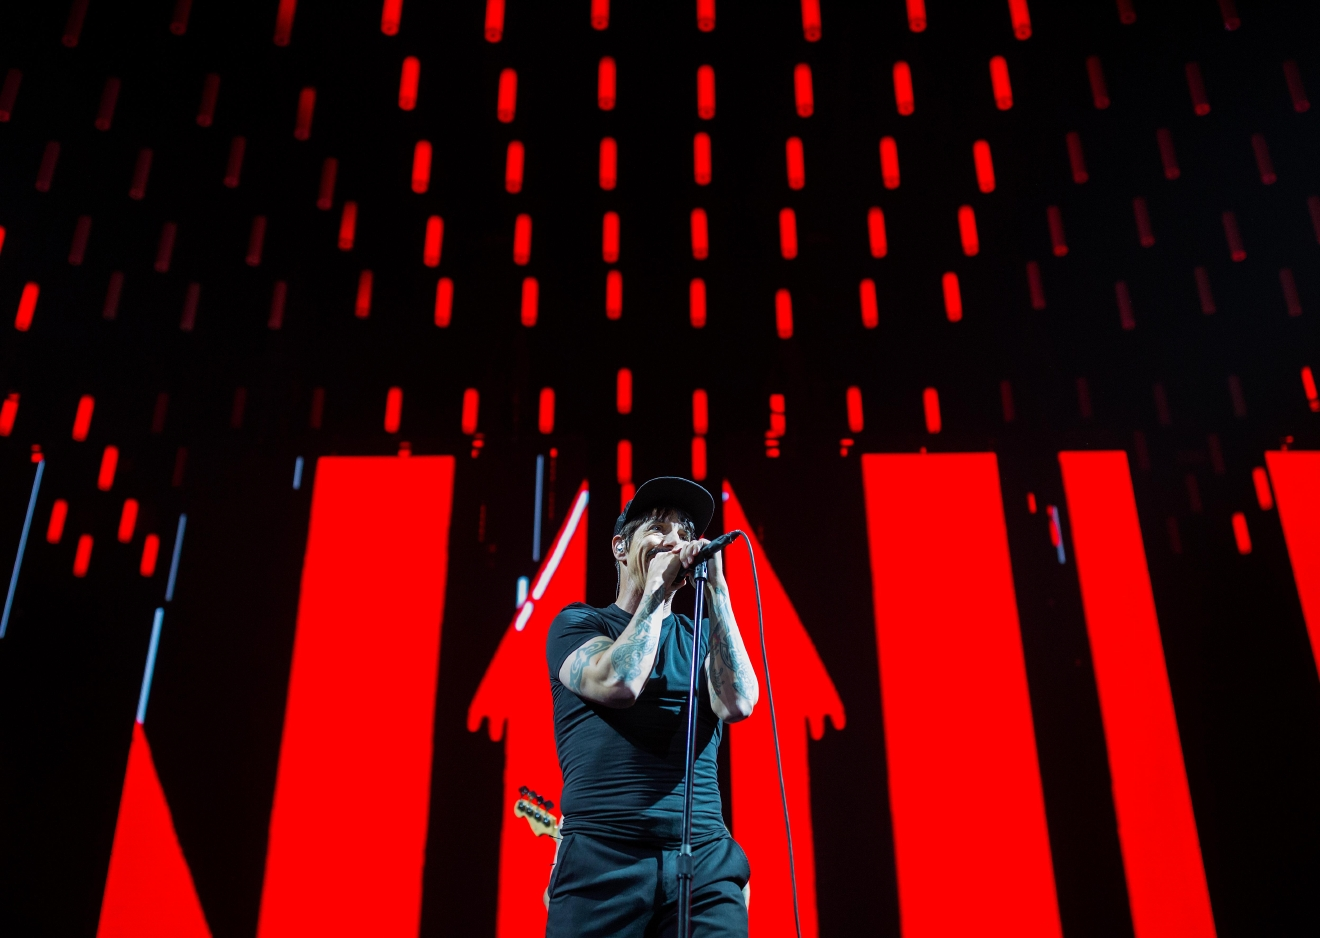 Lead singer Anthony Kiedis during the Red Hot Chili Peppers' performance at KeyArena.(Sy Bean / Seattle Refined)(Sy Bean / Seattle Refined)